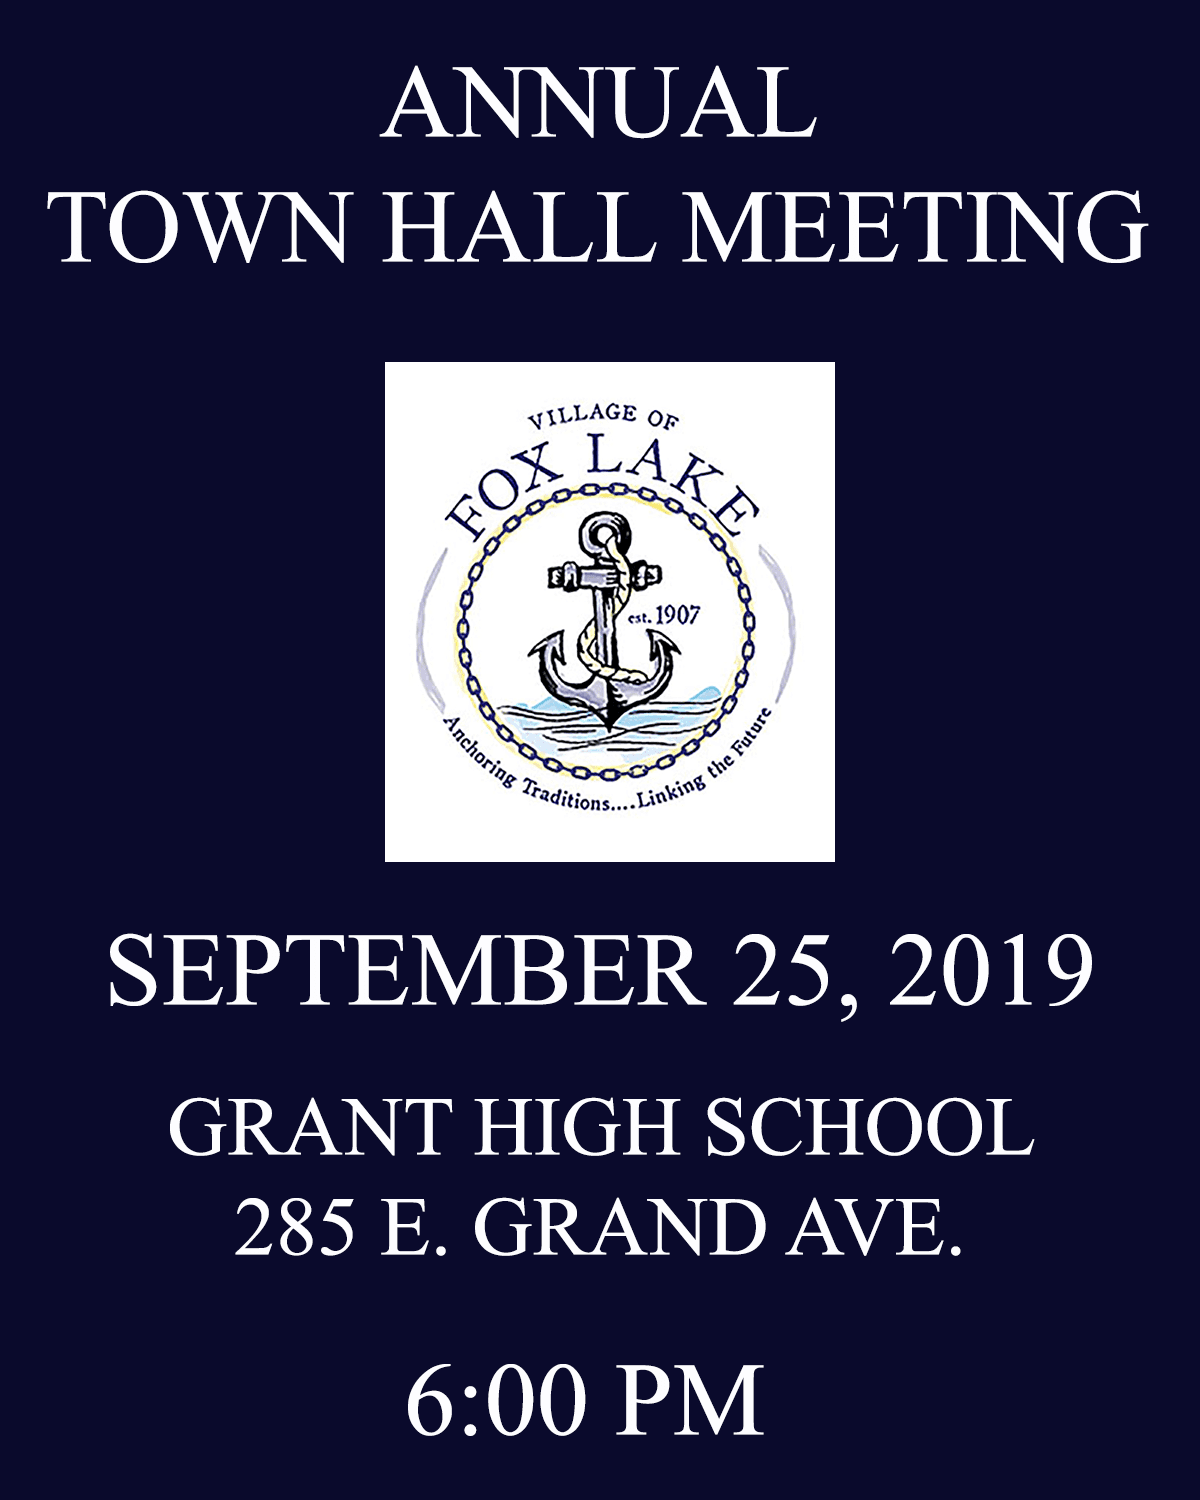 TOWNHALL MEETING 2019